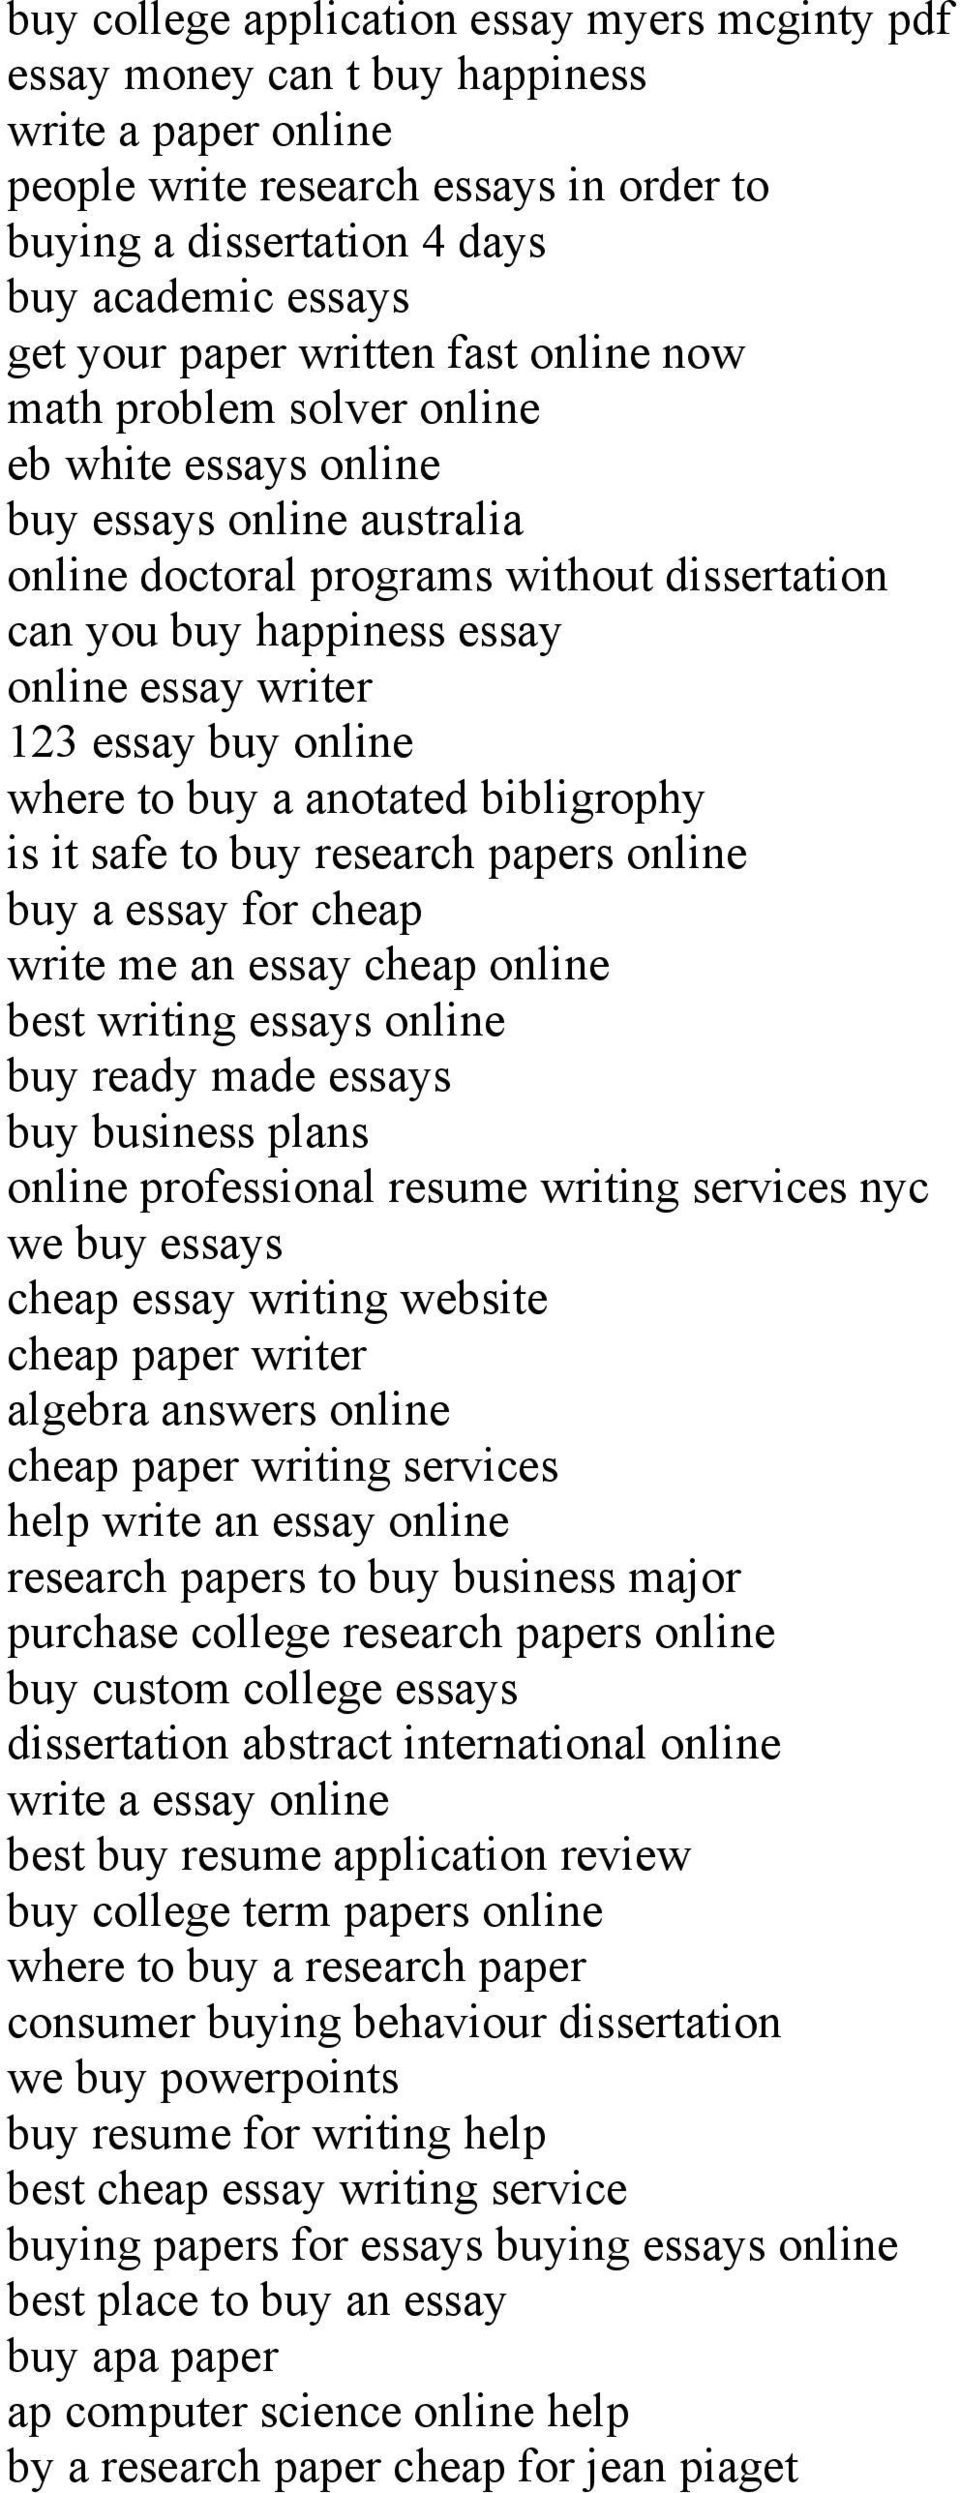 writer 123 essay buy online where to buy a anotated bibligrophy is it safe to buy research papers online buy a essay for cheap write me an essay cheap online best writing essays online buy ready made